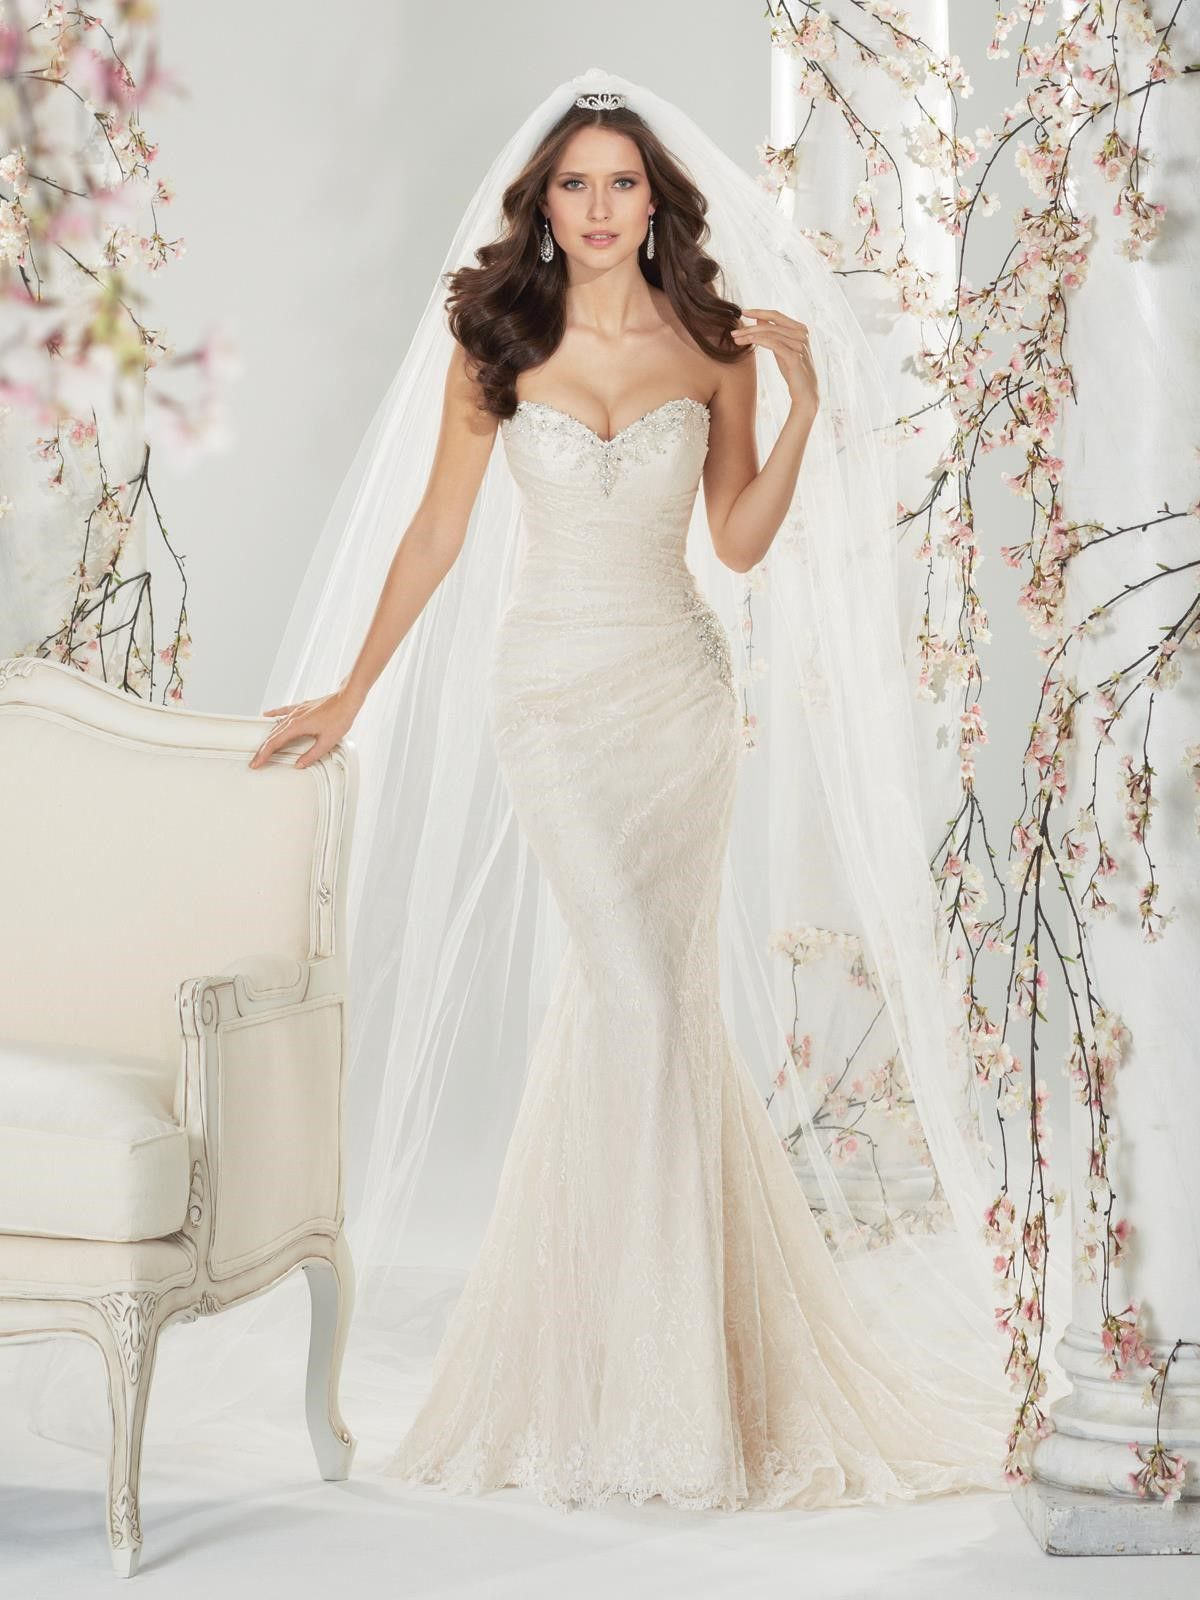 The most expensive wedding dress  most expensive wedding dress on say yes to the dress  if i ever get